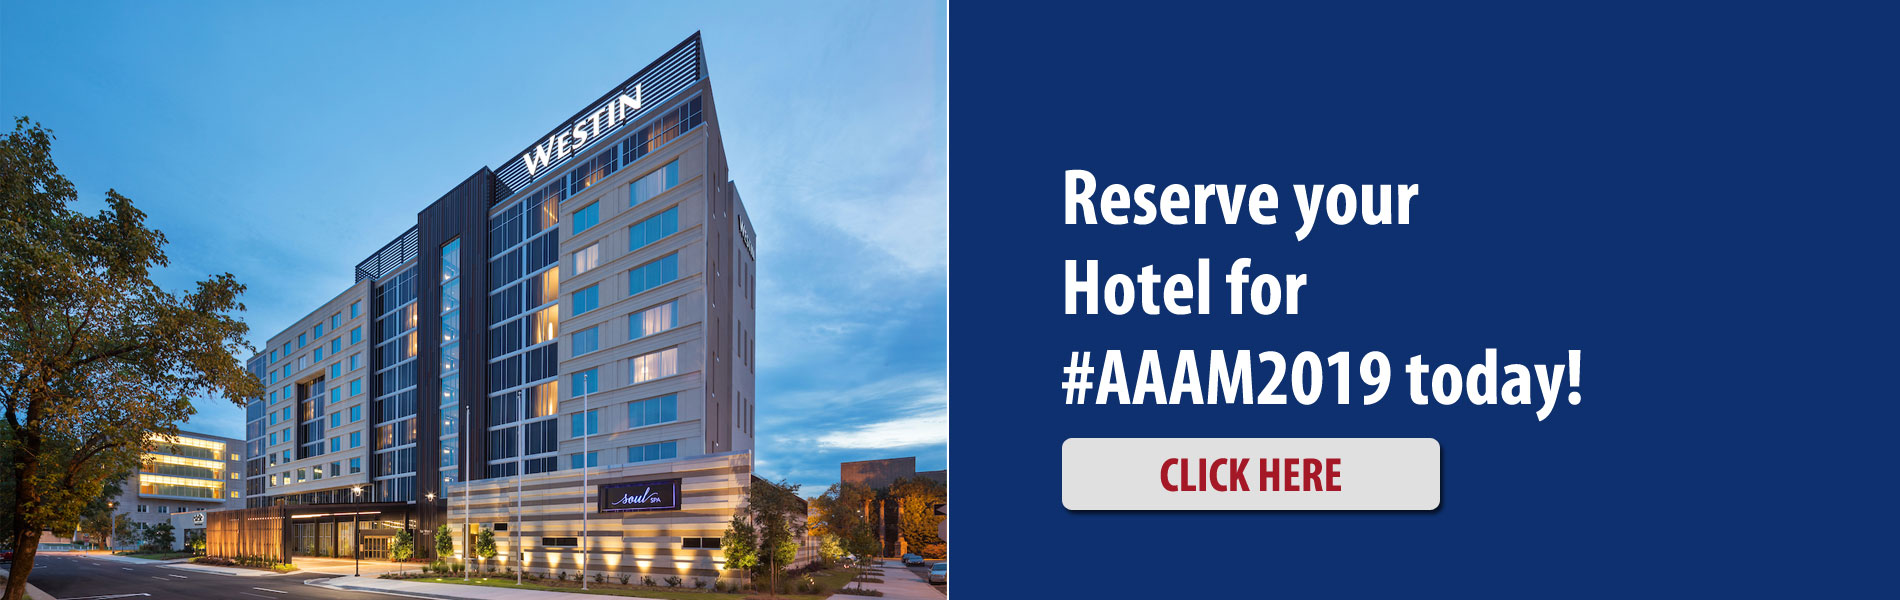 2019 AAAM Conference hotel